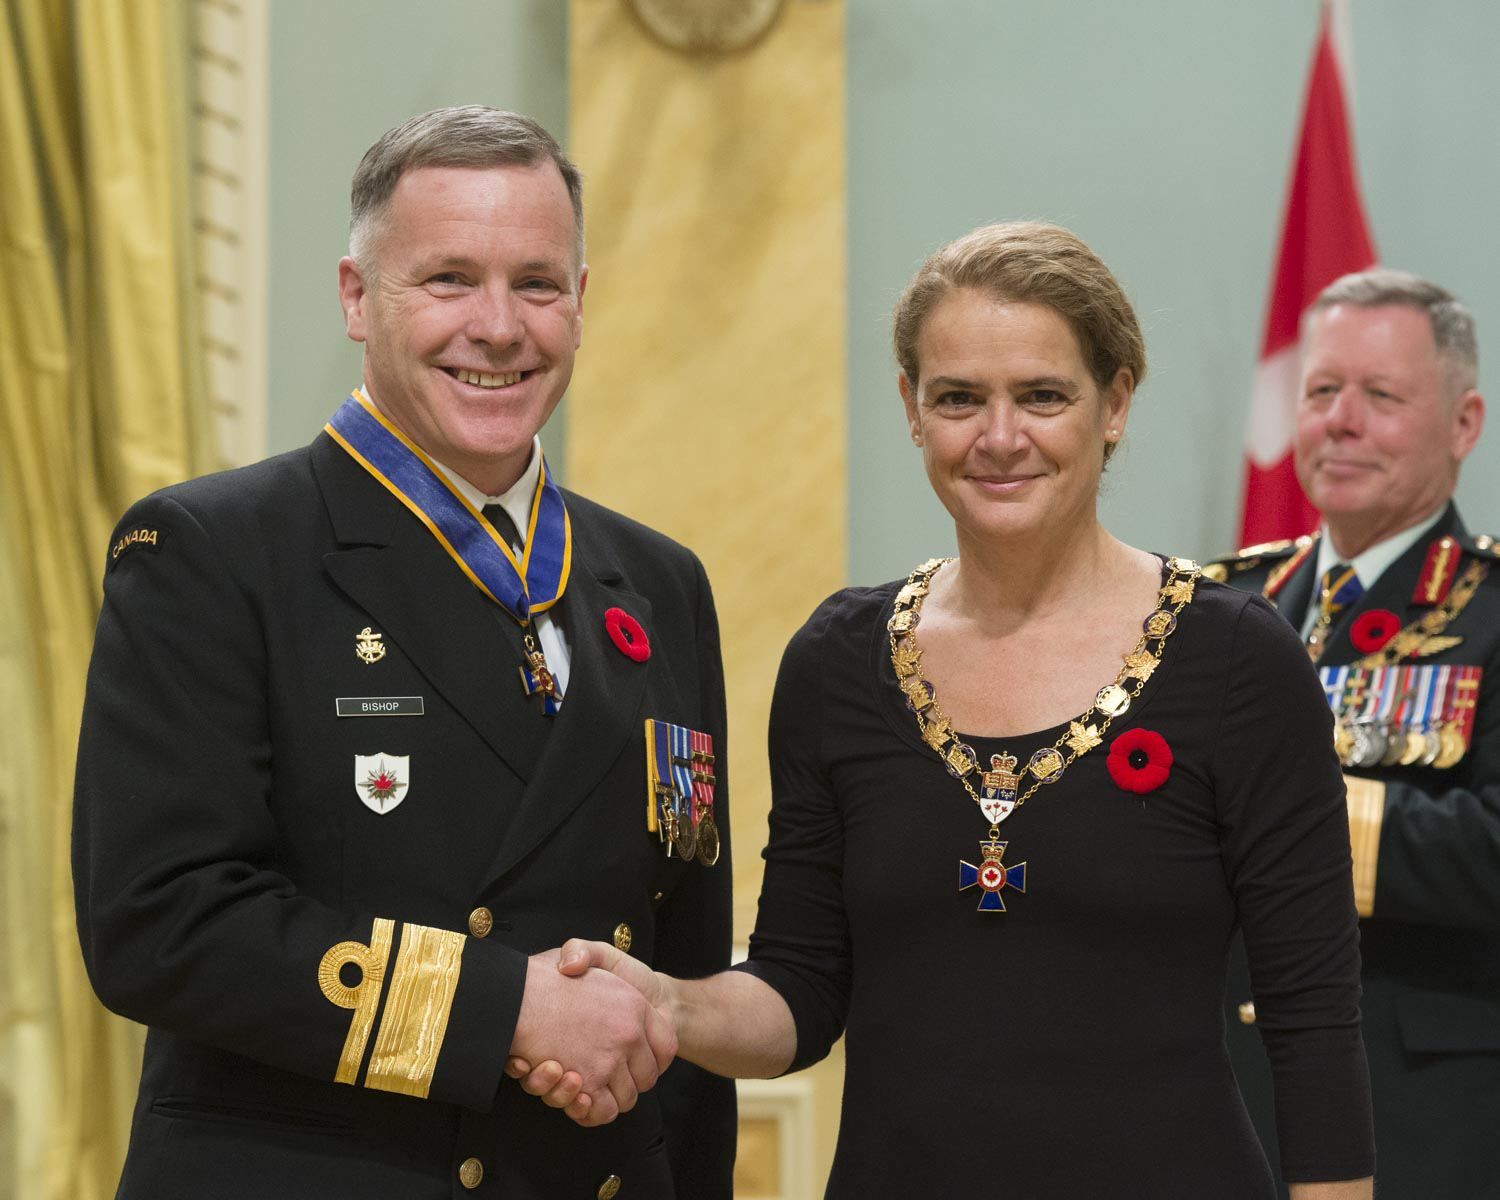 Her Excellency presented the Order of Military Merit at the Commander level (C.M.M.) to Rear-Admiral Scott Edward George Bishop, C.M.M., C.D., from the Canadian Forces Intelligence Command in